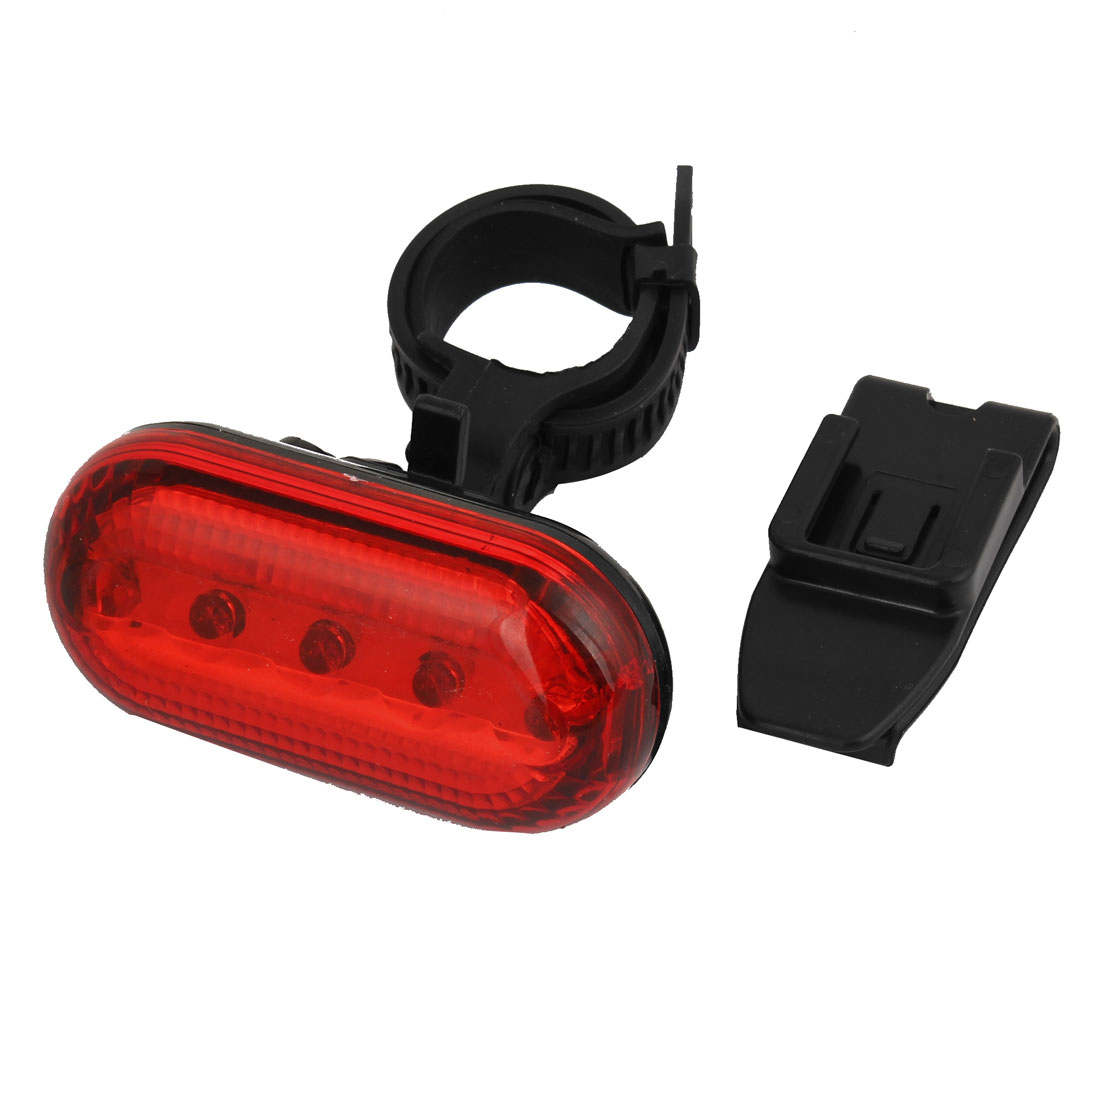 Bicycle MTB 3 Modes 5 LED Red Emergency Safety Warning Rear Tail Light Lamp